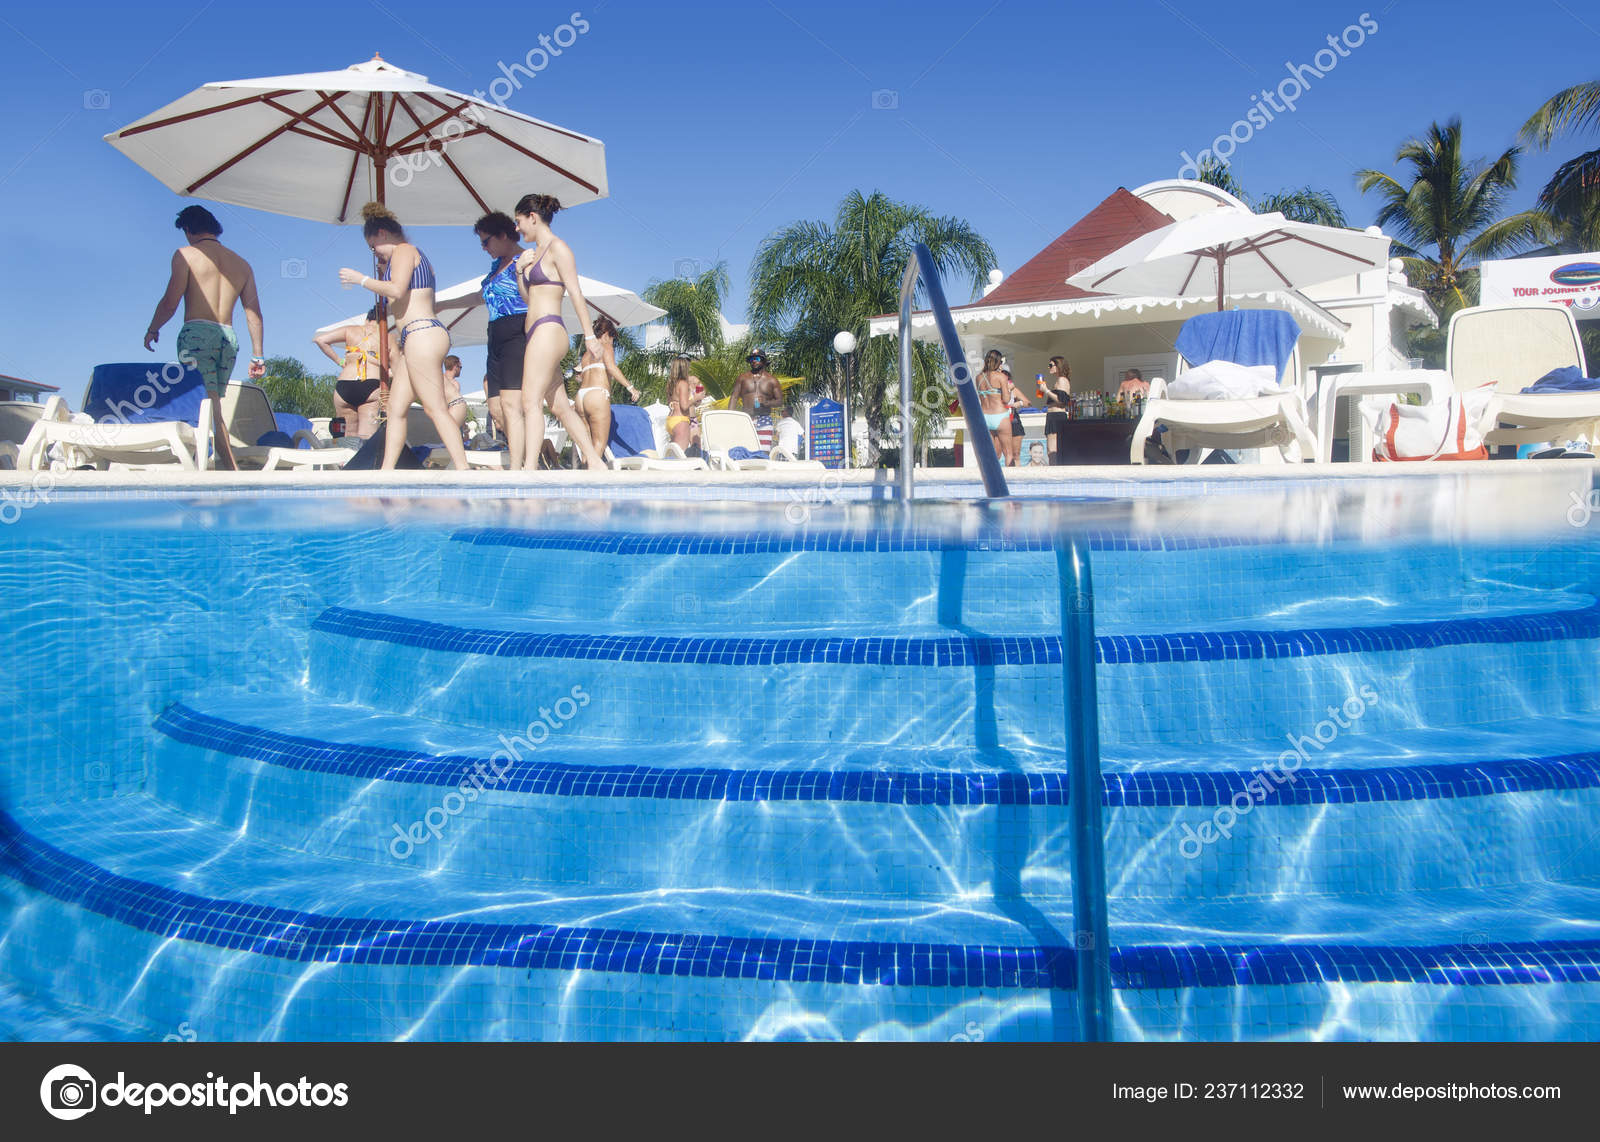 depositphotos stock photo punta cana dominican republic december